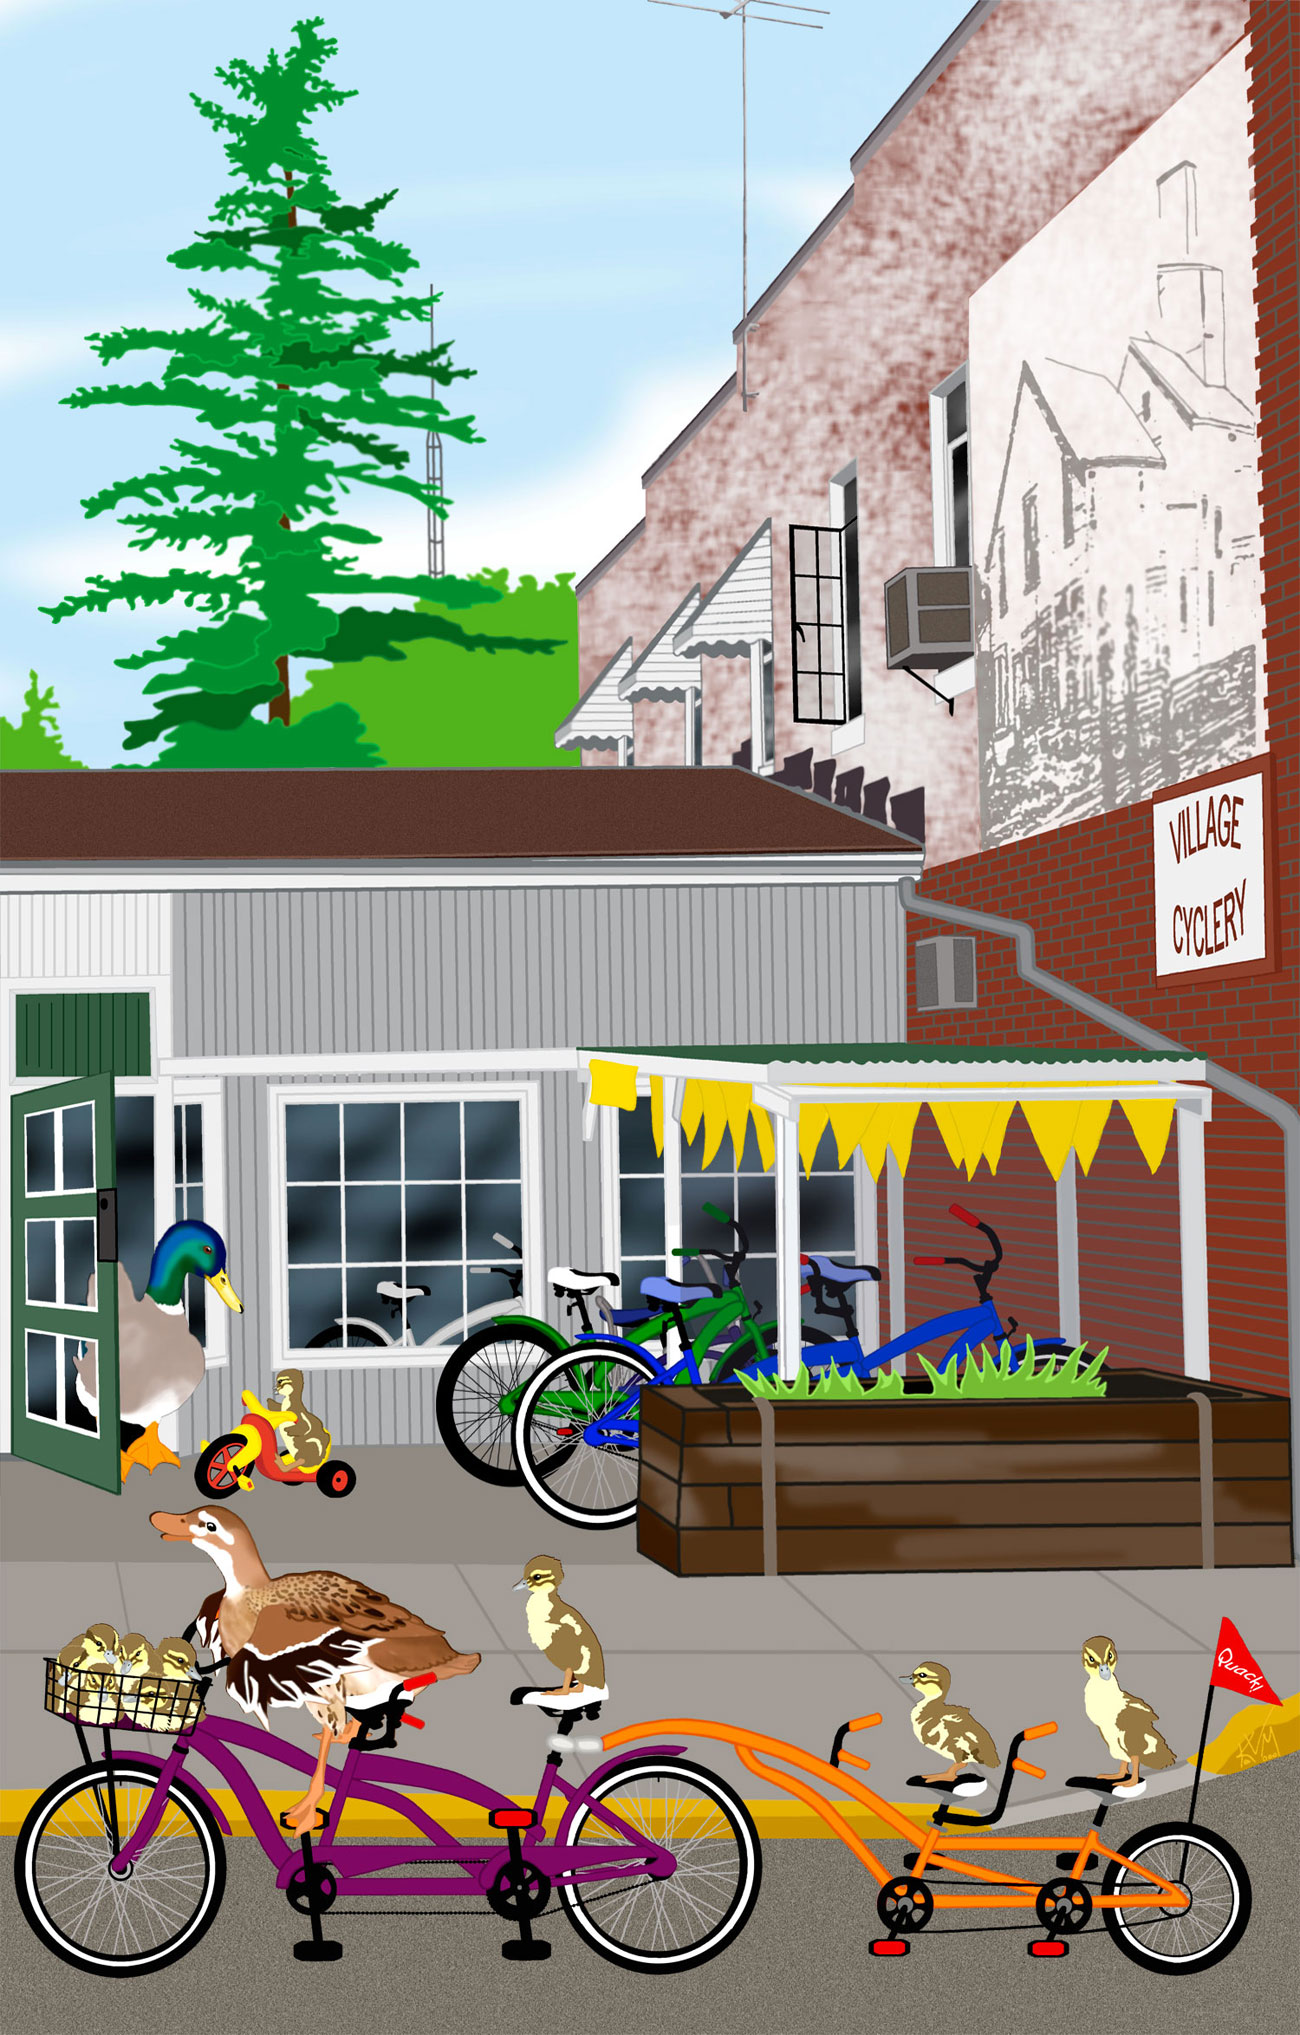 You'll Look Sweet Upon the Seat ~ Village Cyclery (131)